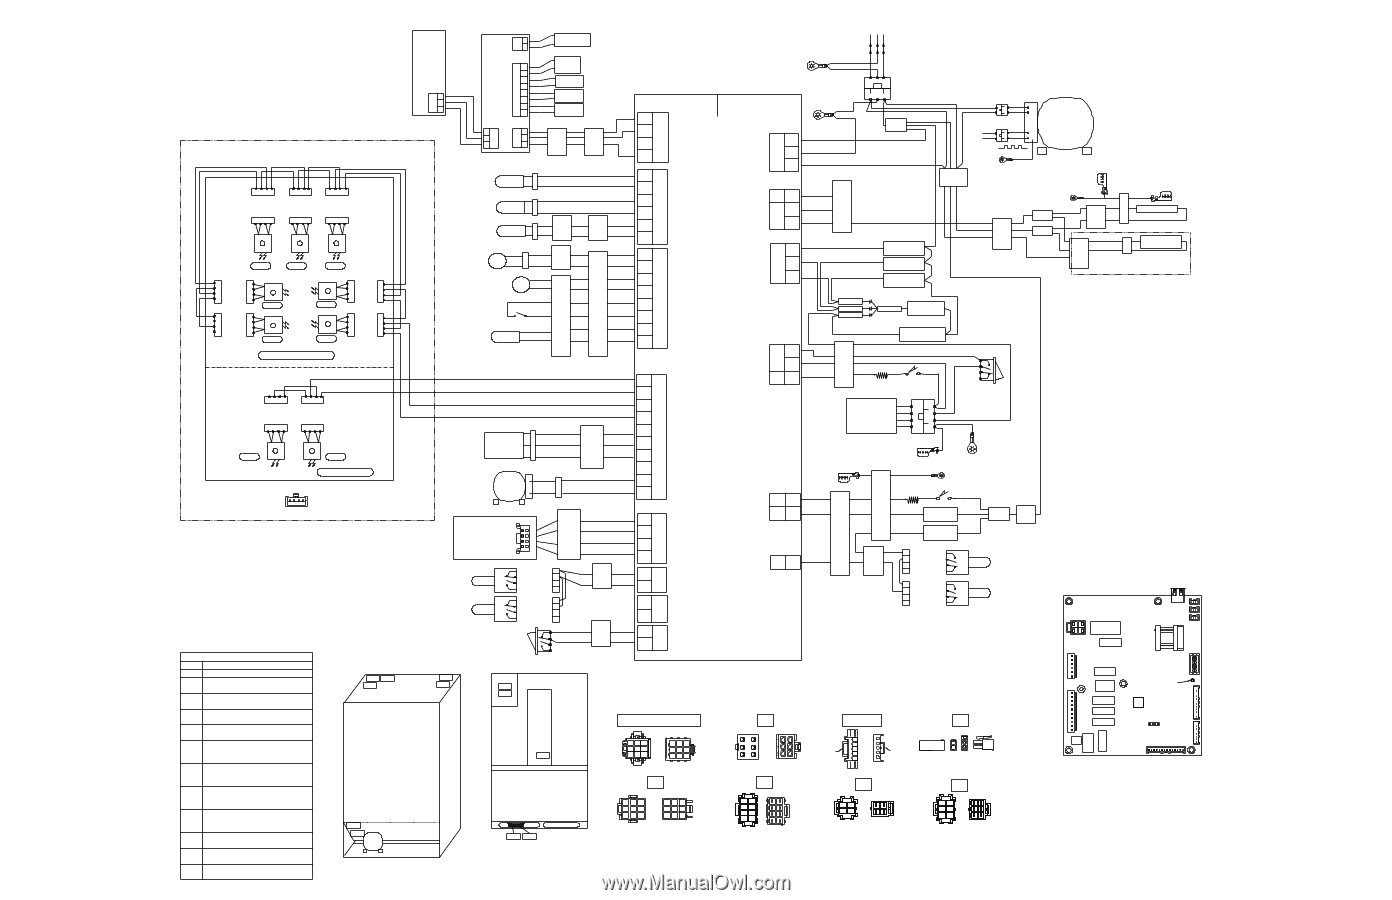 hight resolution of wire diagram a02822101